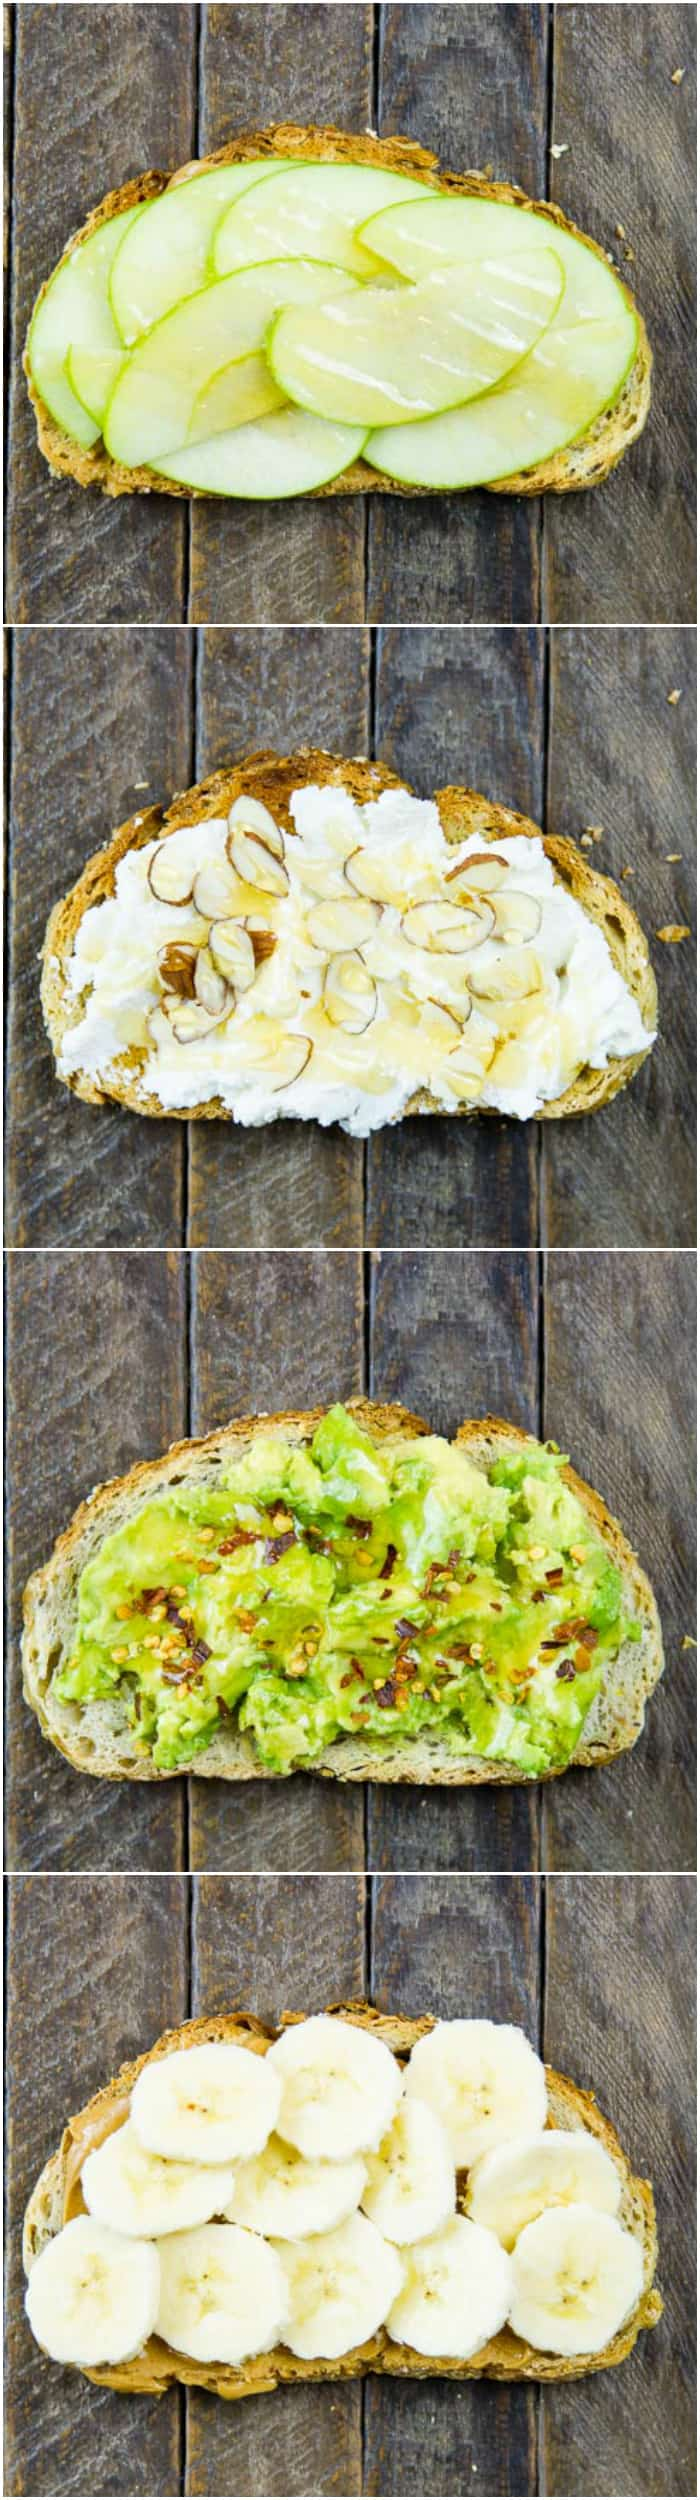 Use Truvia® nectar wherever you use honey. There's less sugar and fewer calories which is why I drizzle it all over these healthy breakfast sandwiches!